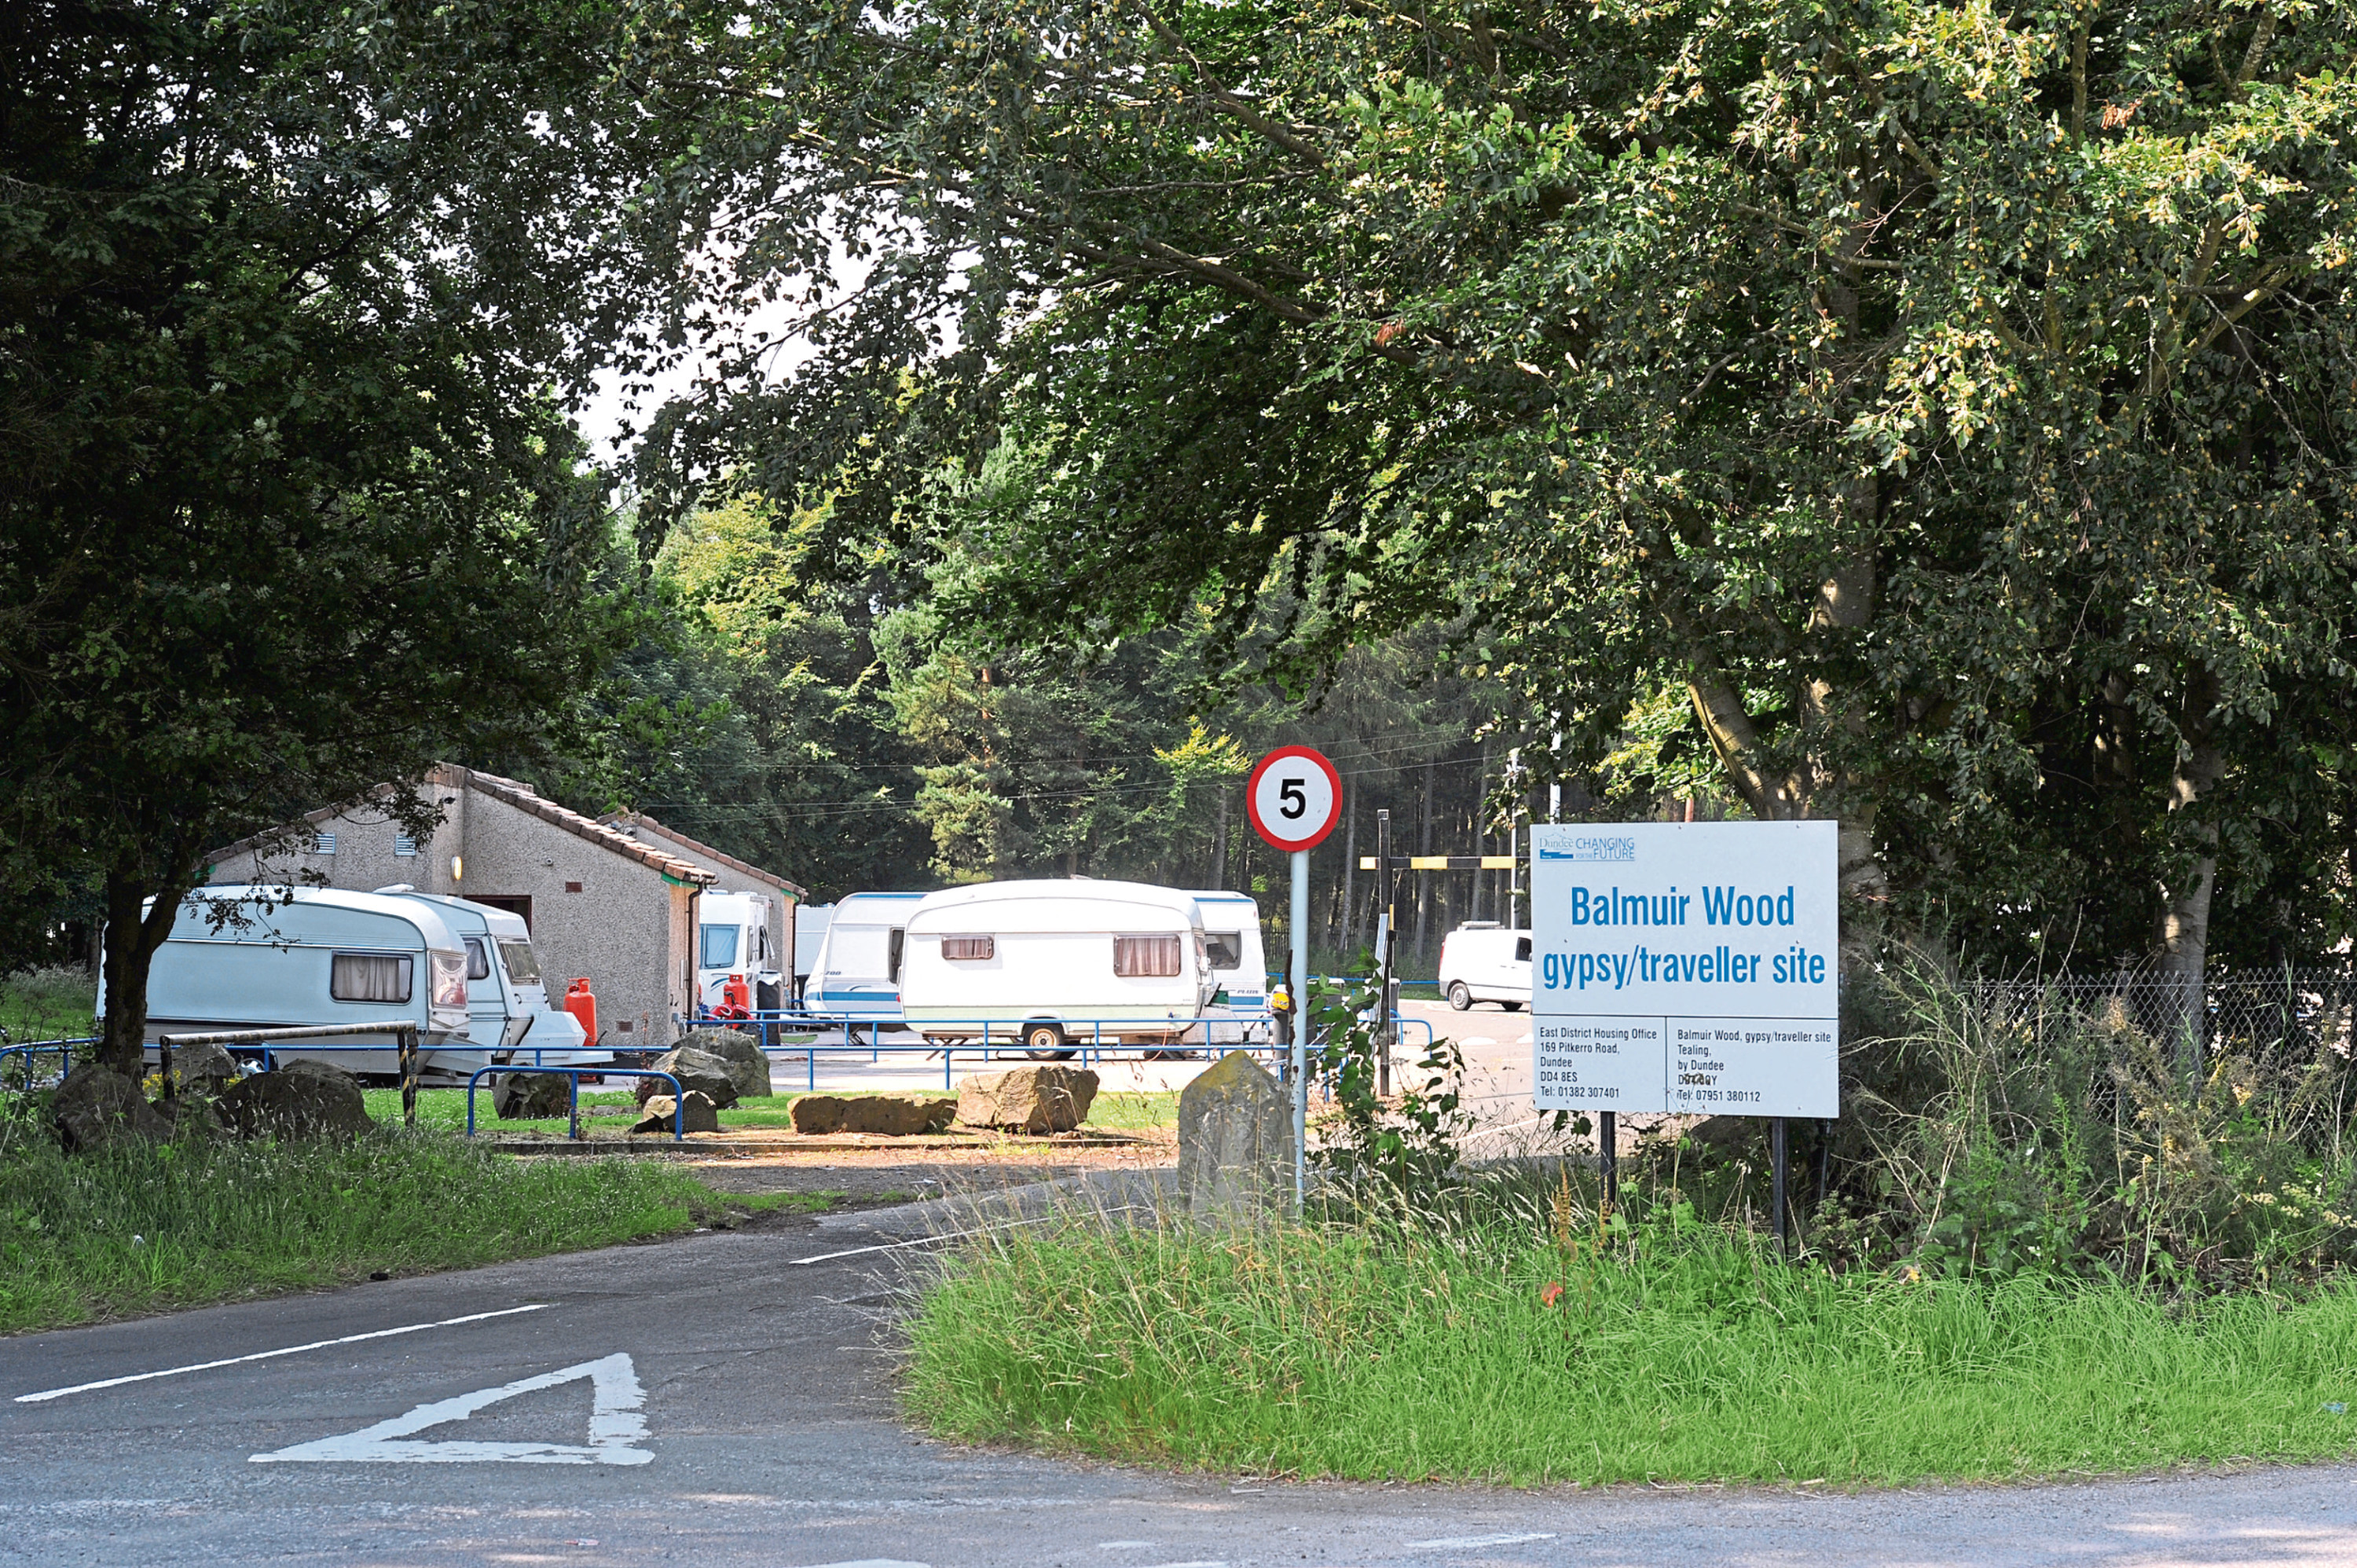 Dundee City Council's Travellers' site at Balmuir Wood, near Tealing, the only official site of its kind in the area